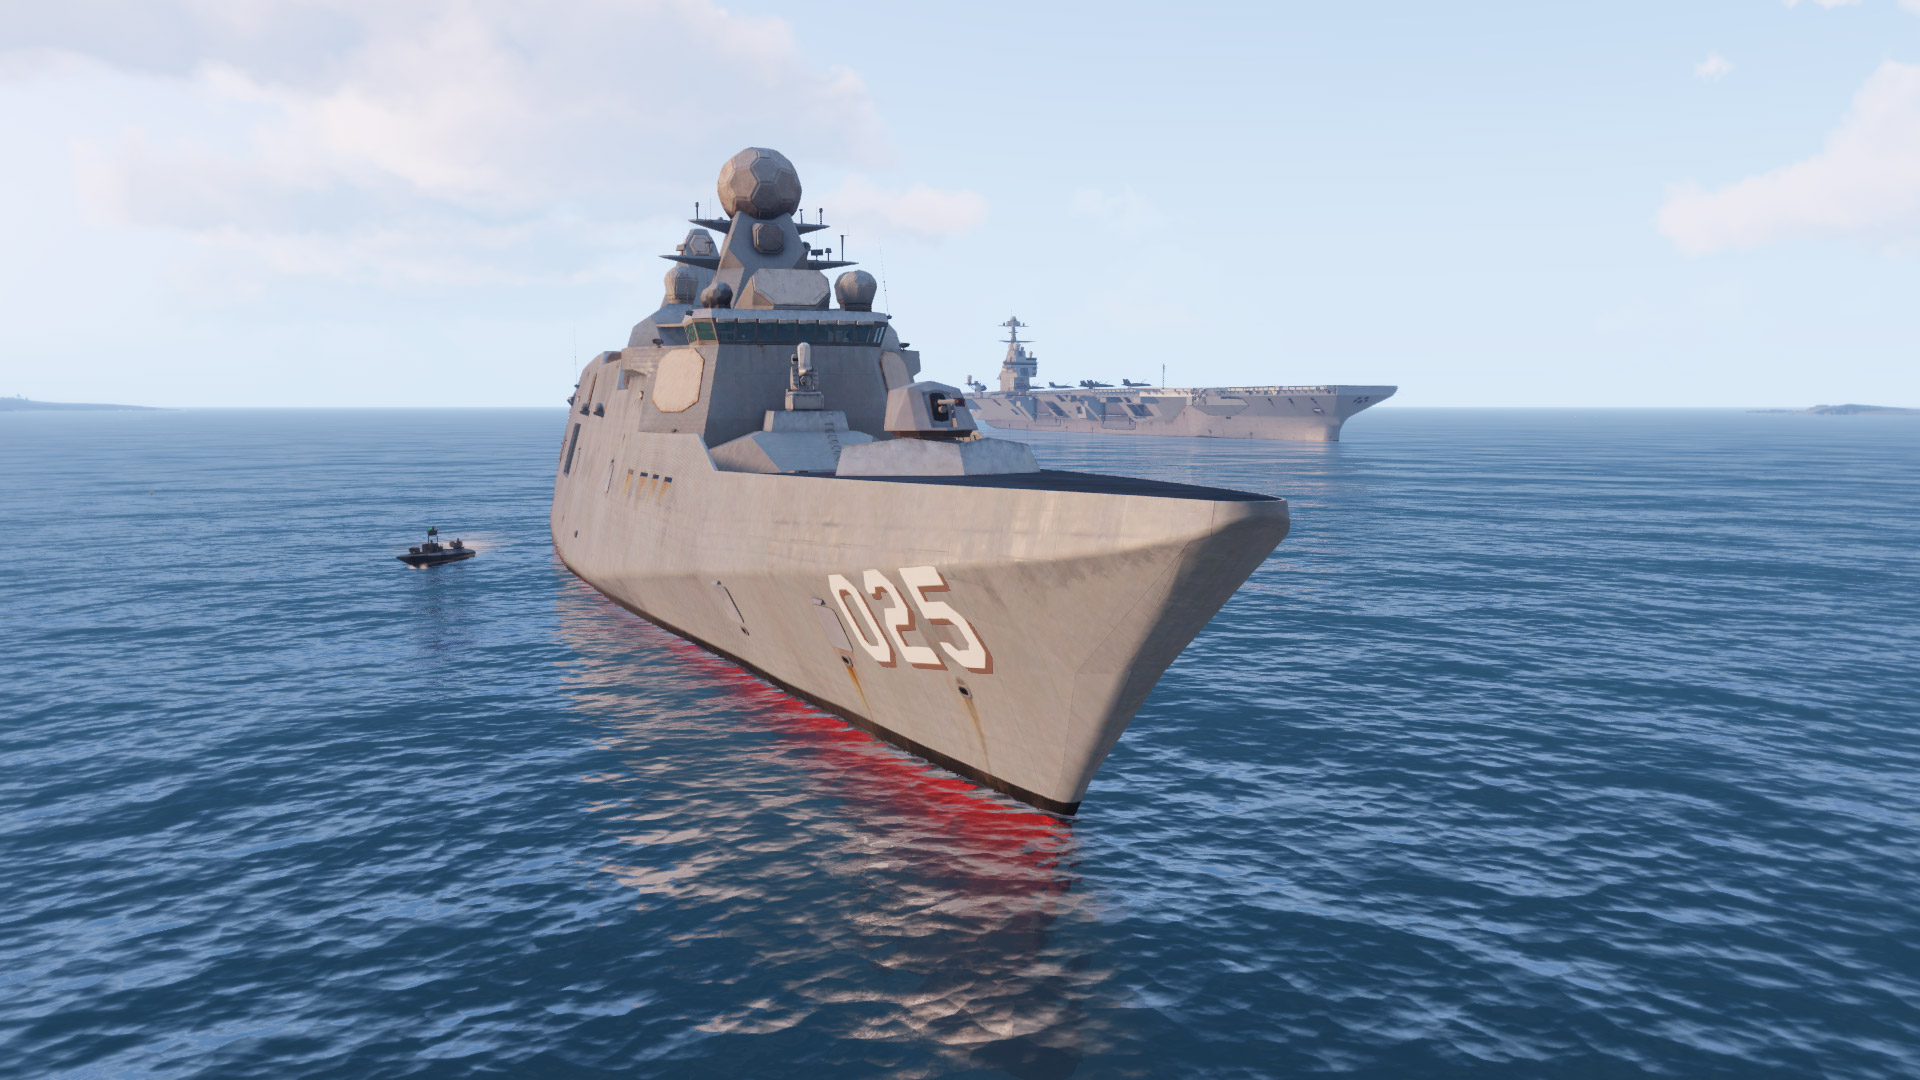 arma3.com/assets/img/post/images/arma3_roadmap2018_destroyer.jpg